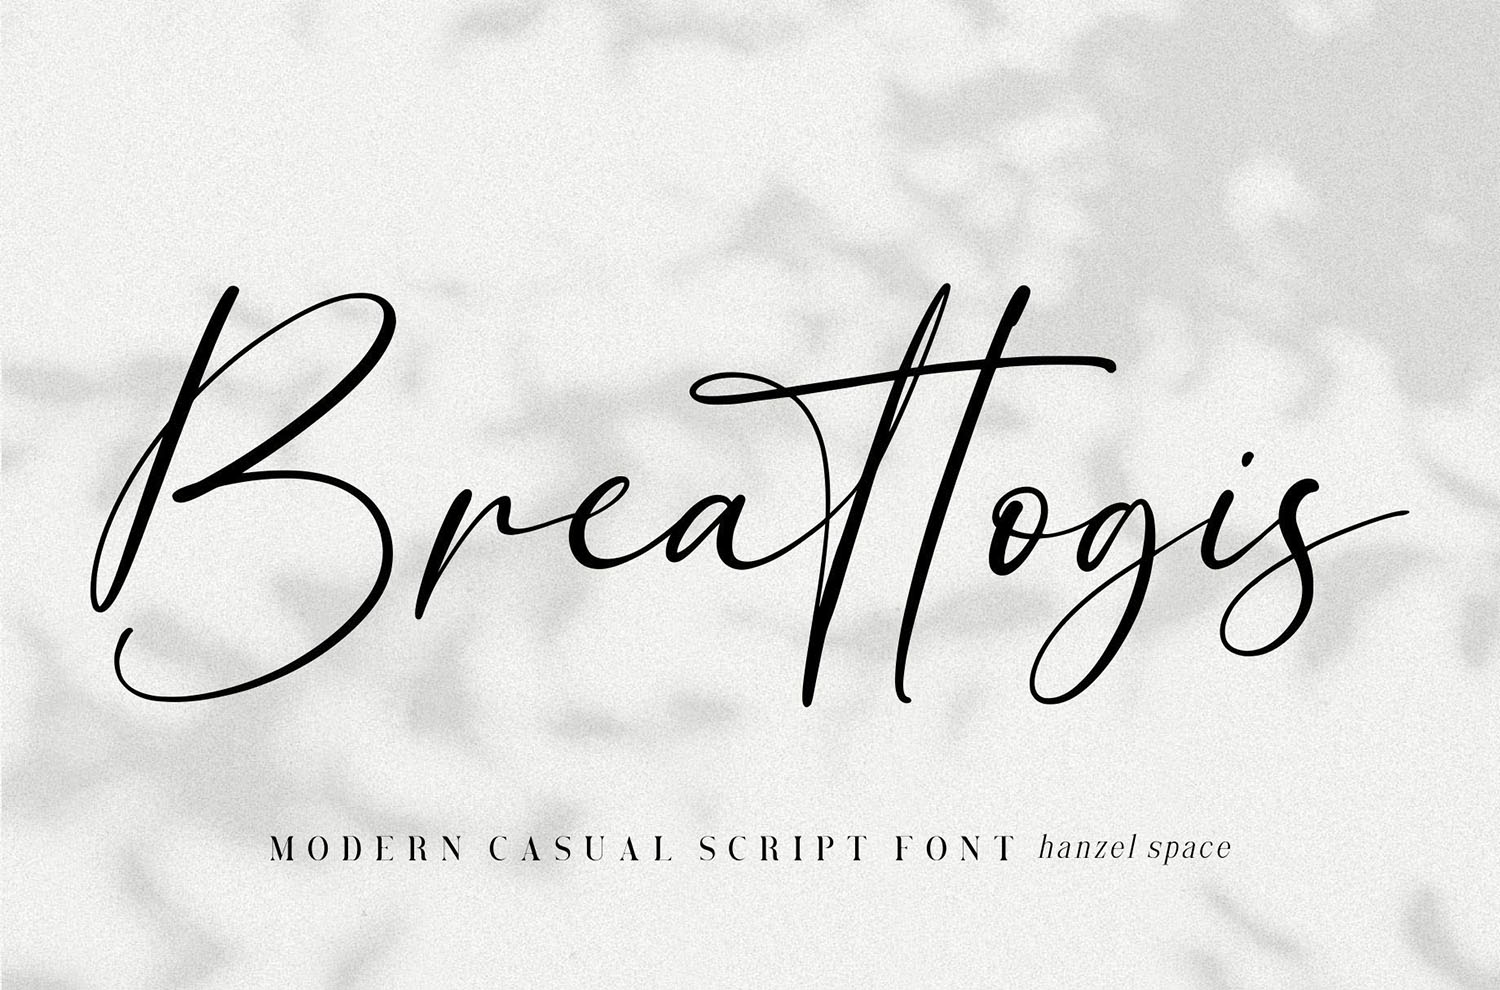 Breattogis Free Font